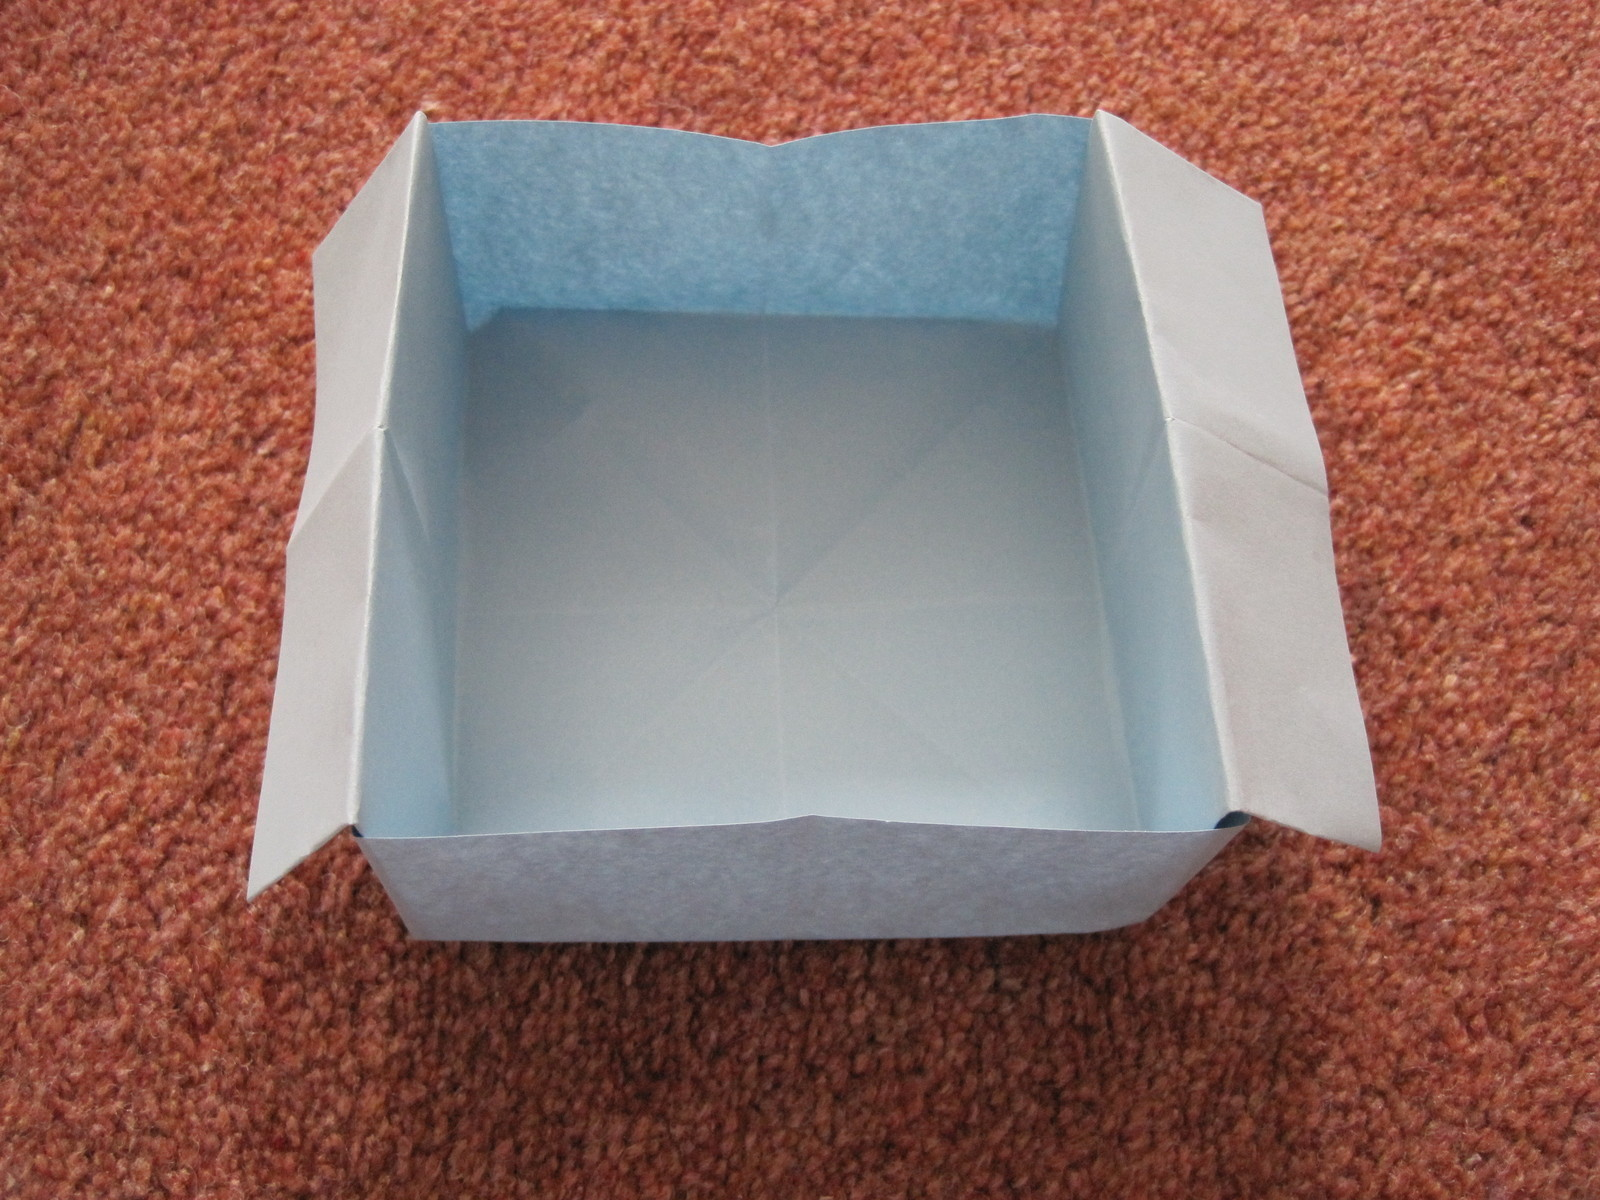 How To Fold A Paper Box With Lid - Mrspalmreader - photo#47